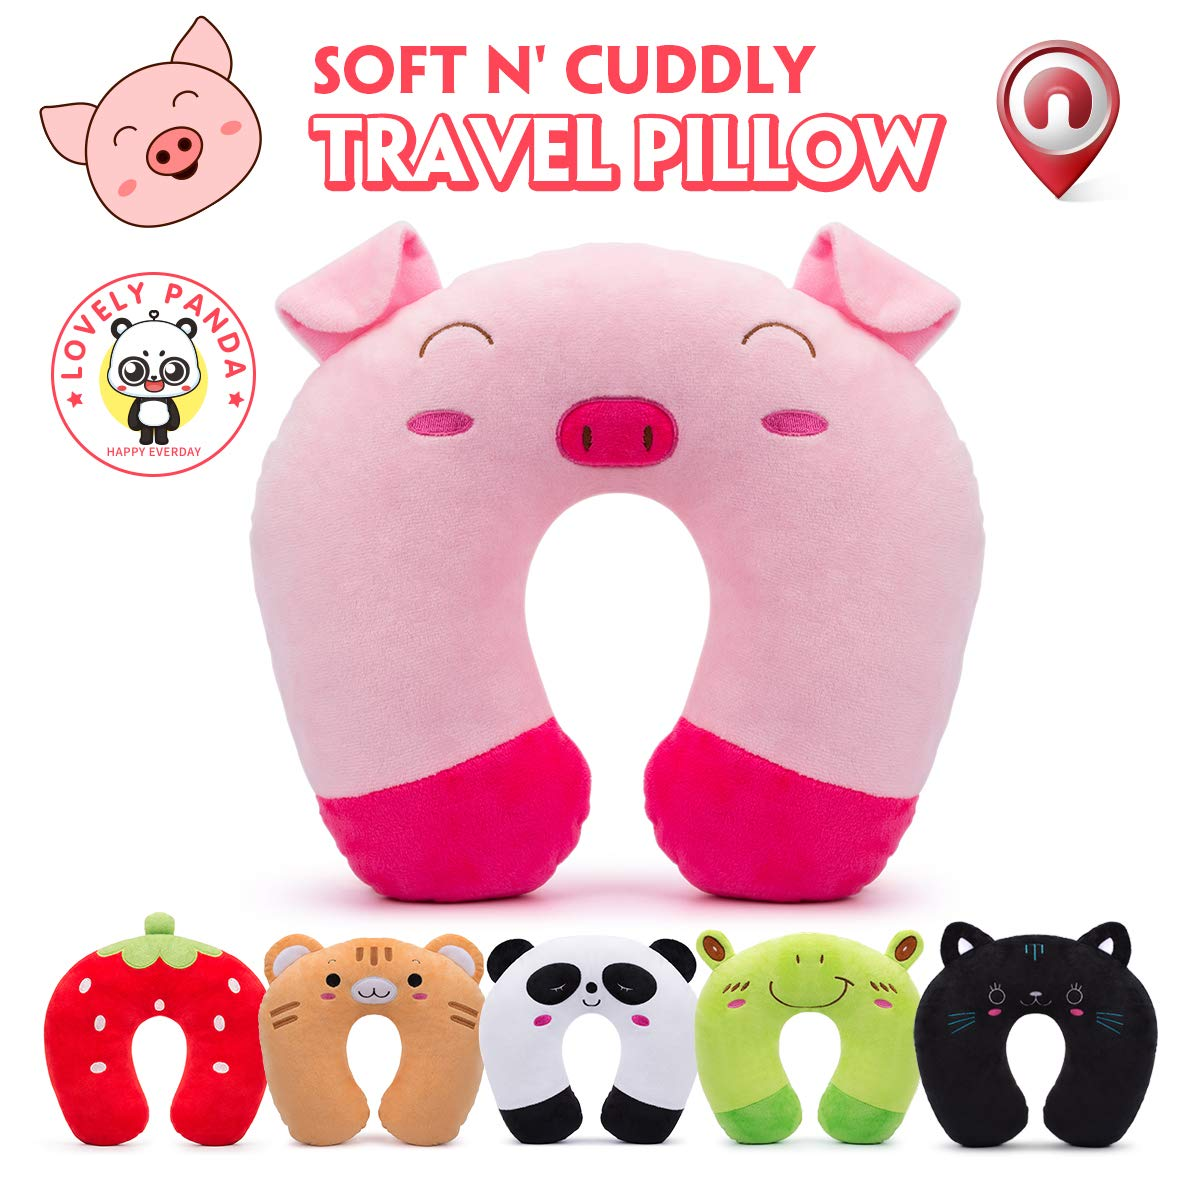 Travel Pillow for Kids Toddlers - Soft Neck Head Chin Support Pillow, Cute Animal, Comfortable in Any Sitting Position for Airplane, Car, Train, Machine Washable, attach luggage, Children gift (Pig)